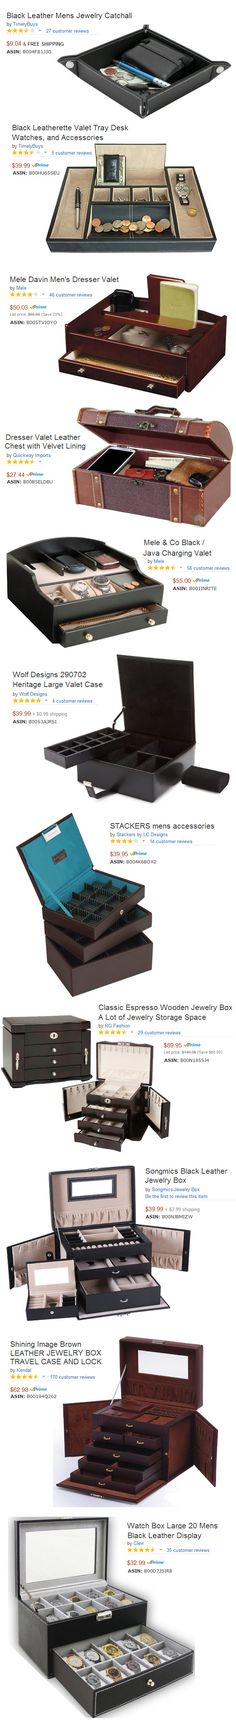 ► ► Get Organized with a Mens Valet or Jewelry Box Organizer!